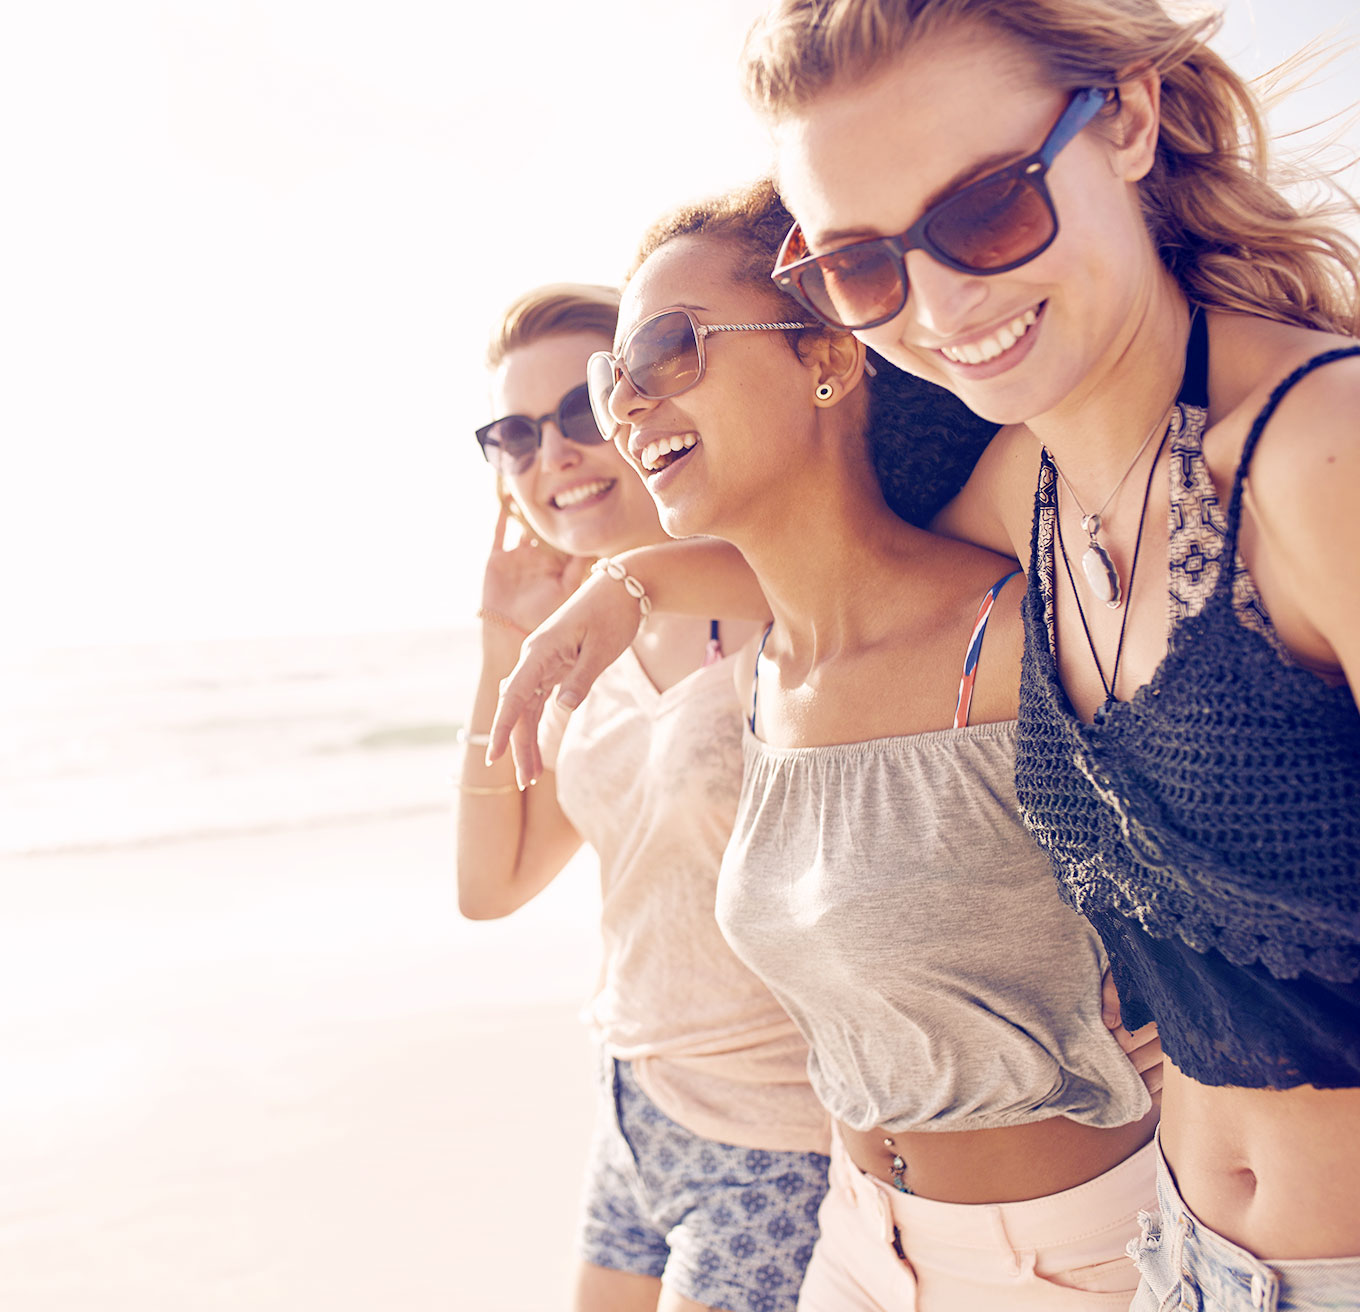 Three Girl Friends Smiling